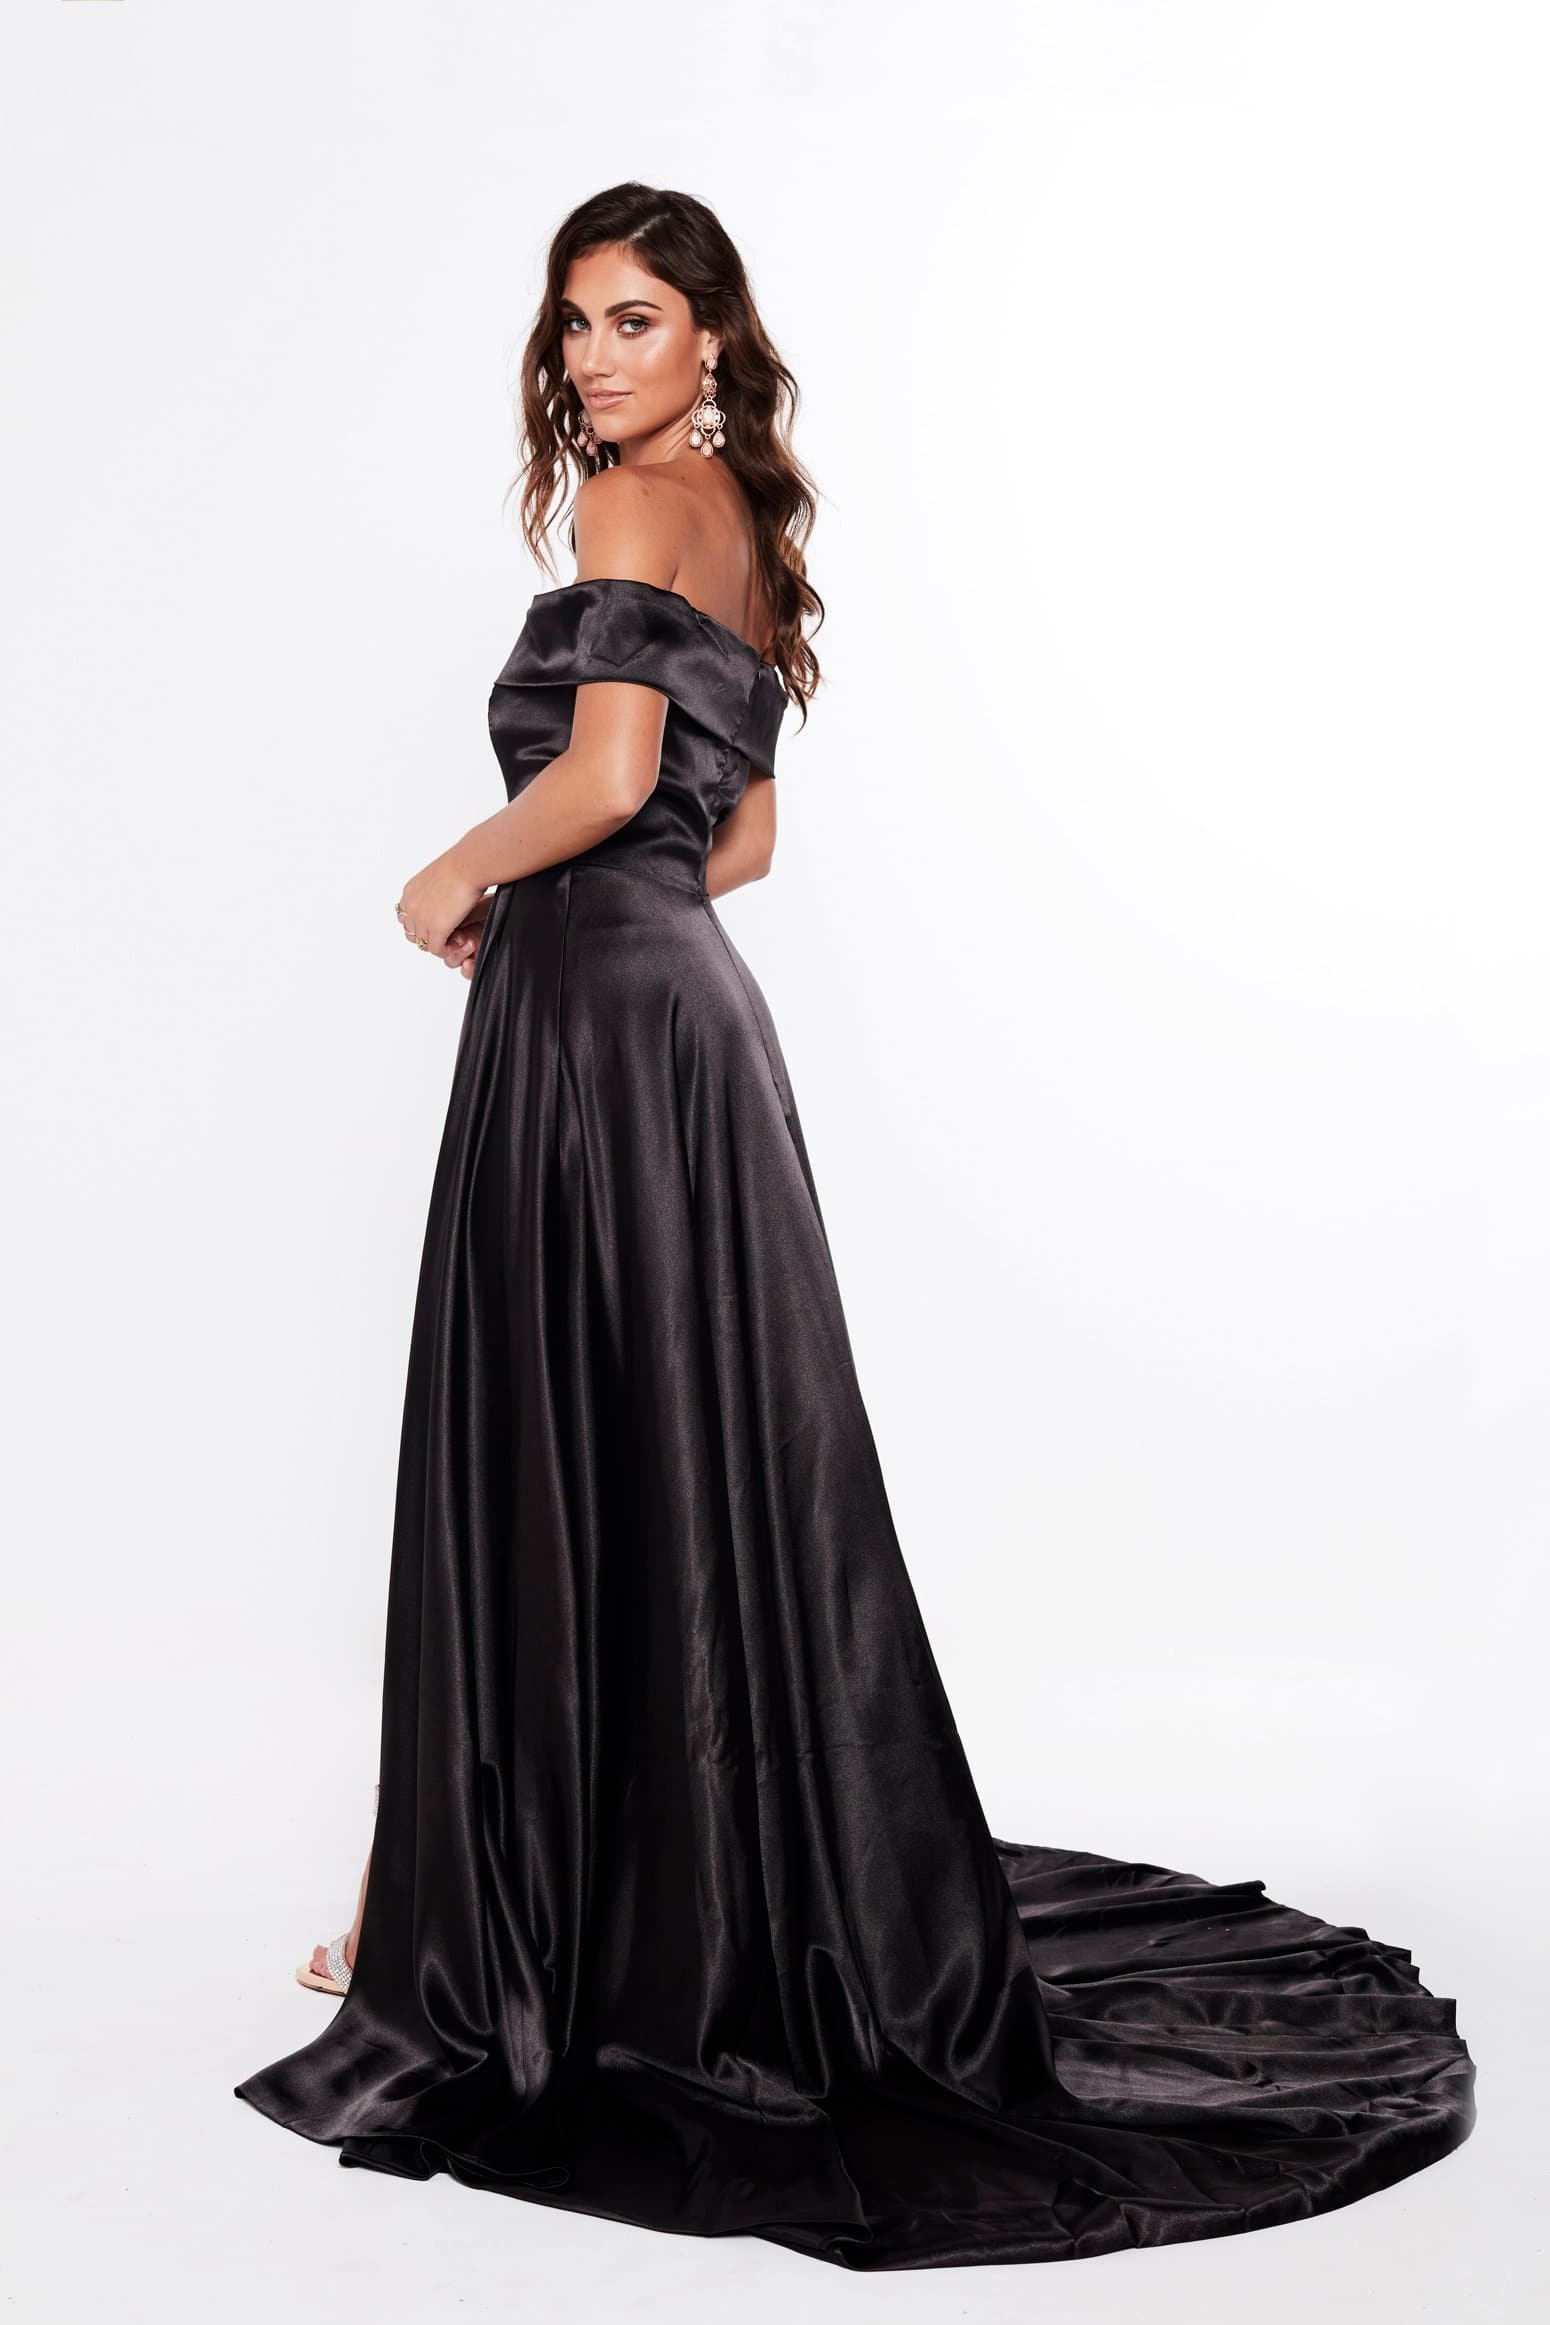 A&N Luxe Valeria Satin Gown - Black